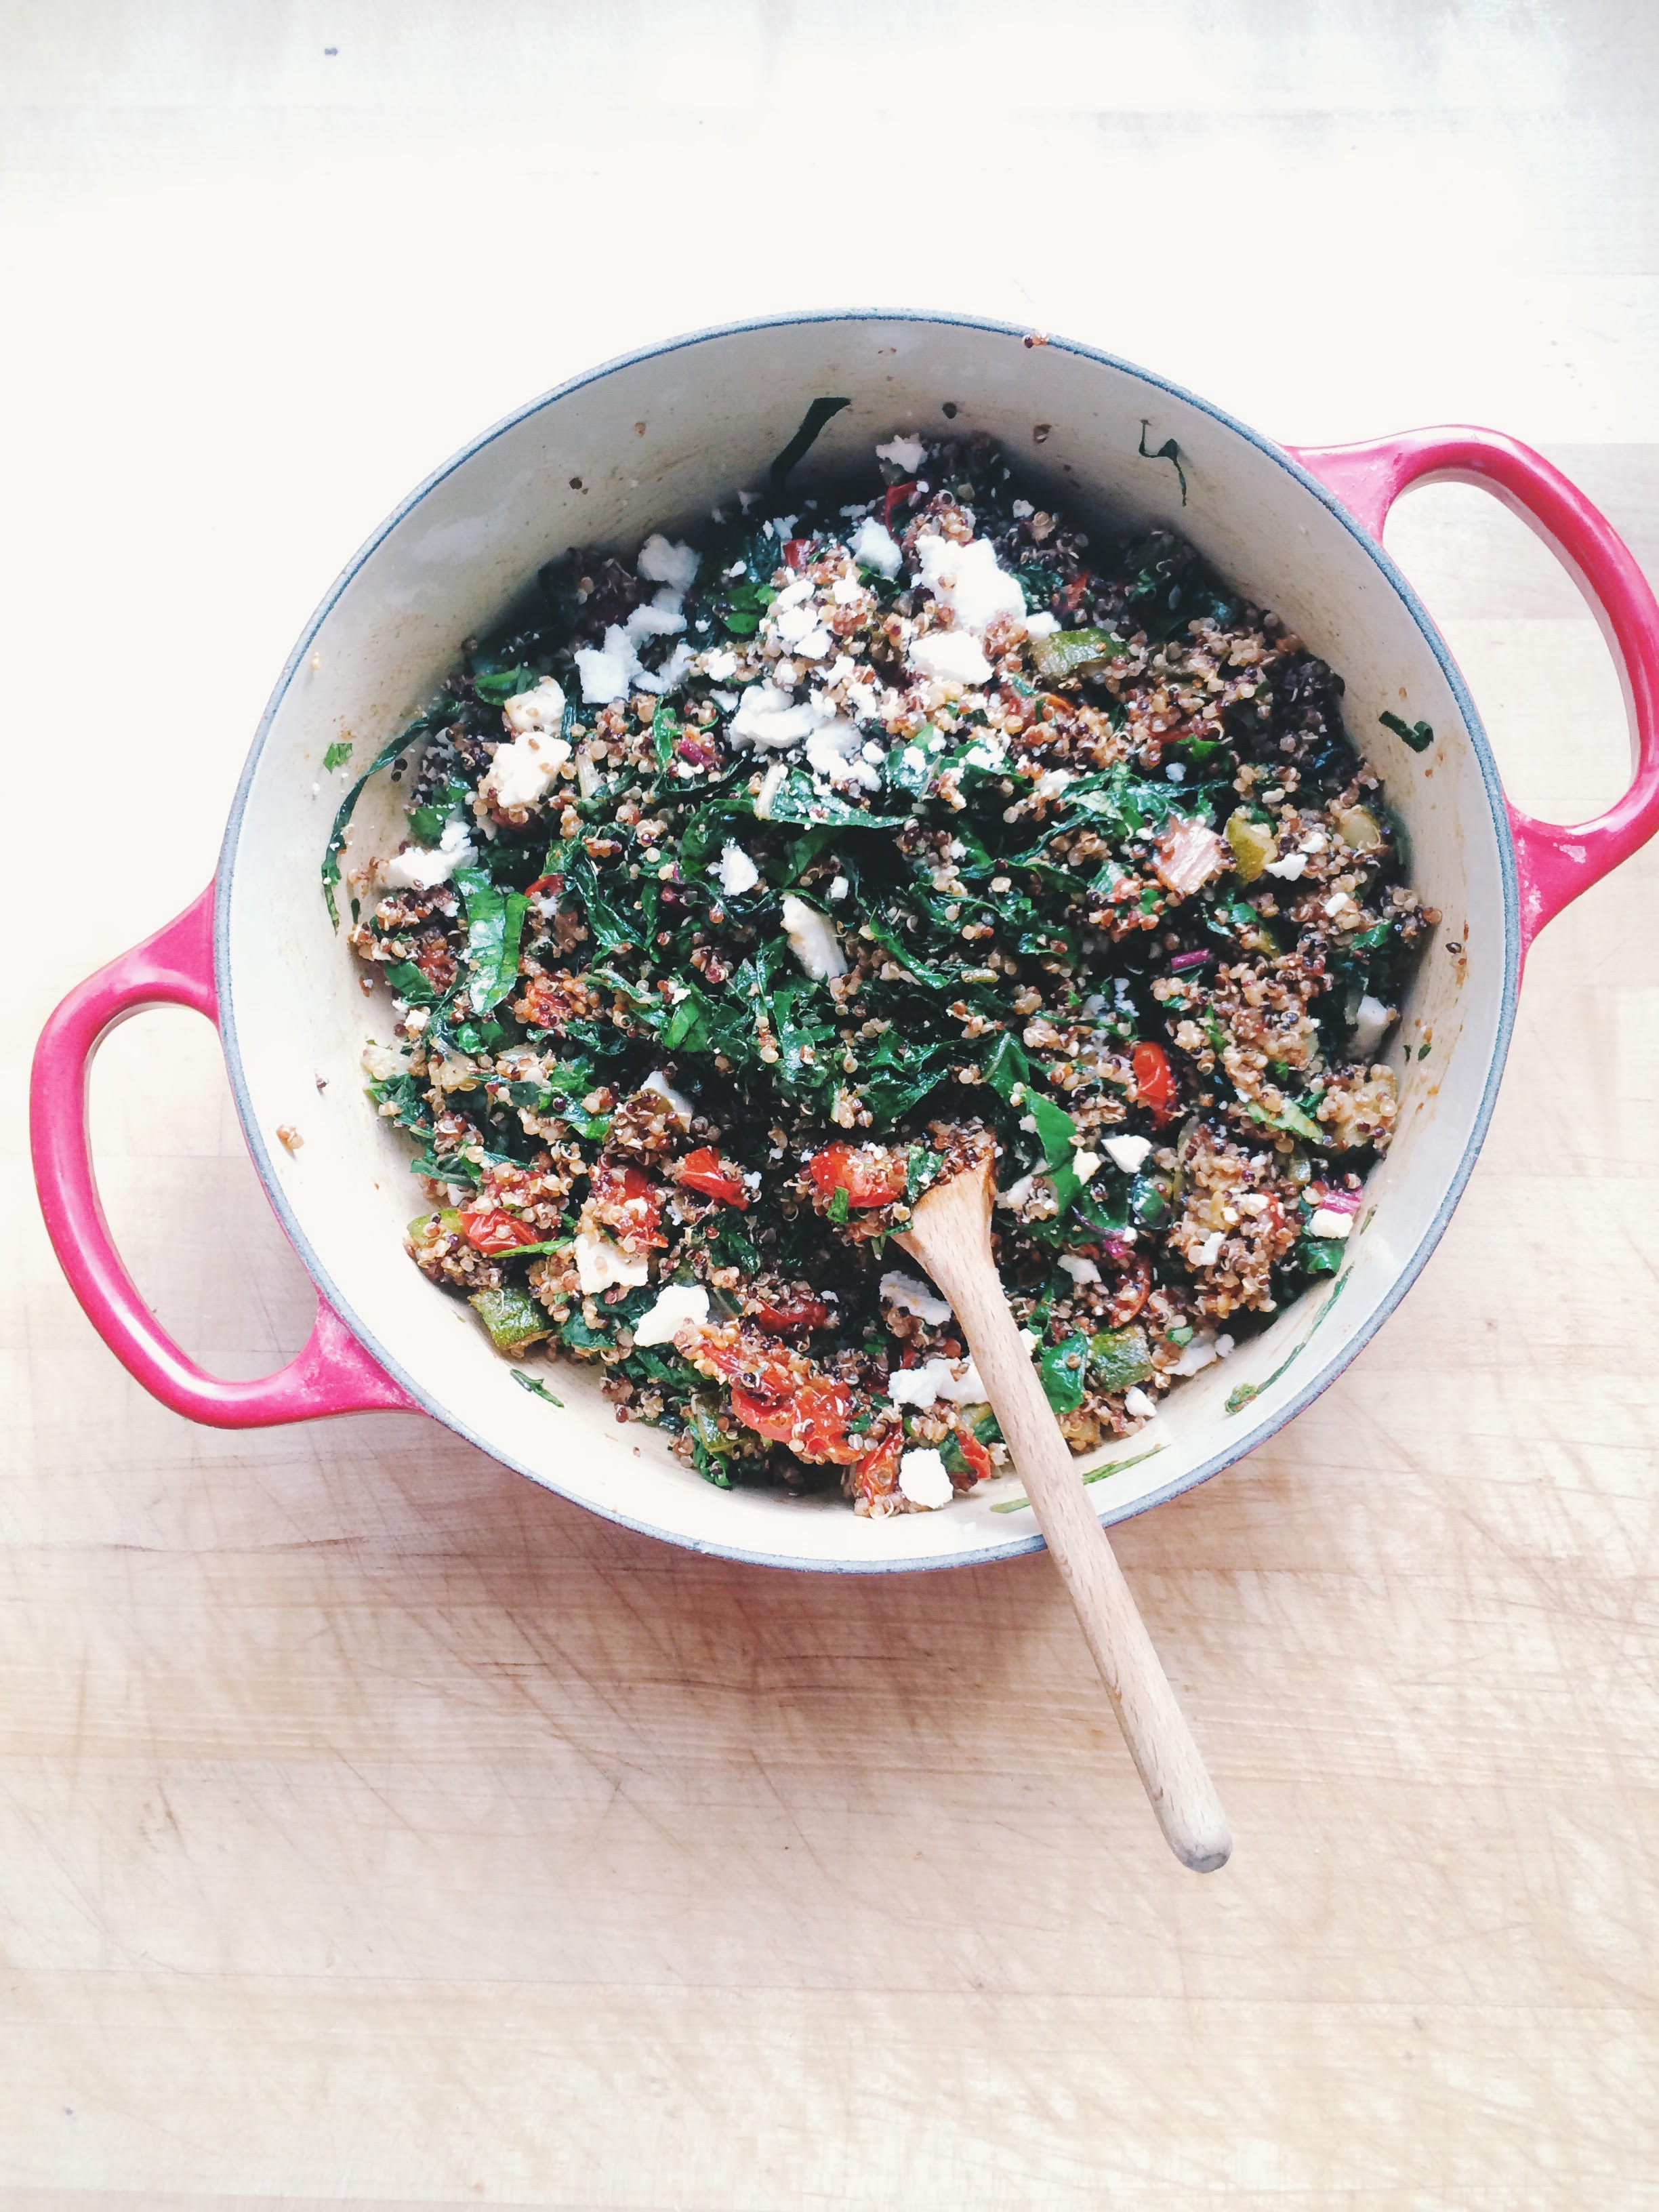 Quinoa Salad with Homemade Harissa | Eat This Poem